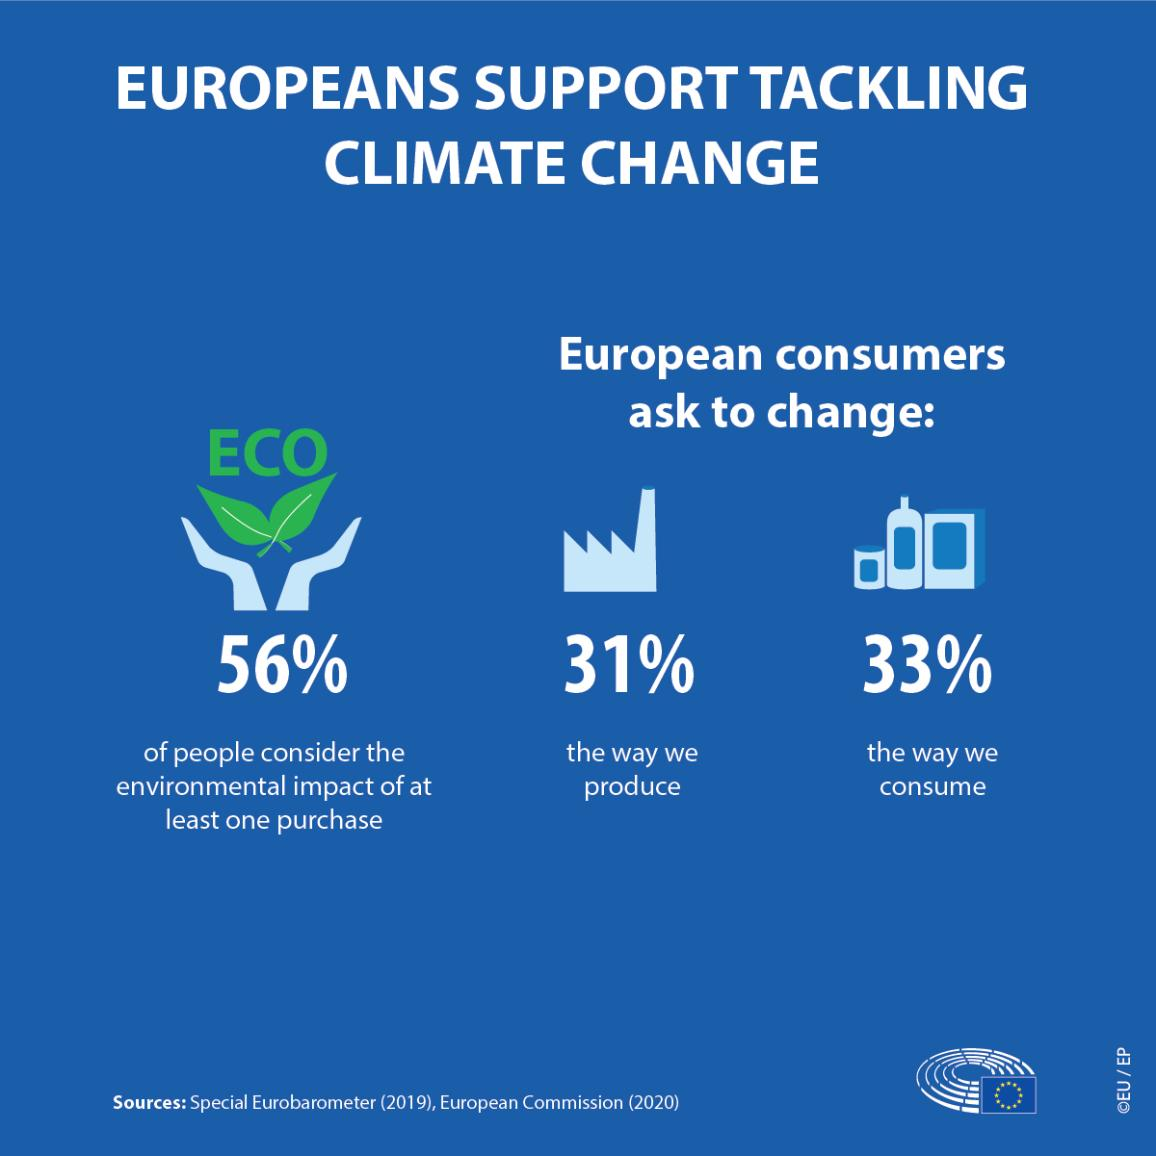 Infographic illustration on Europeans support tackling climate change